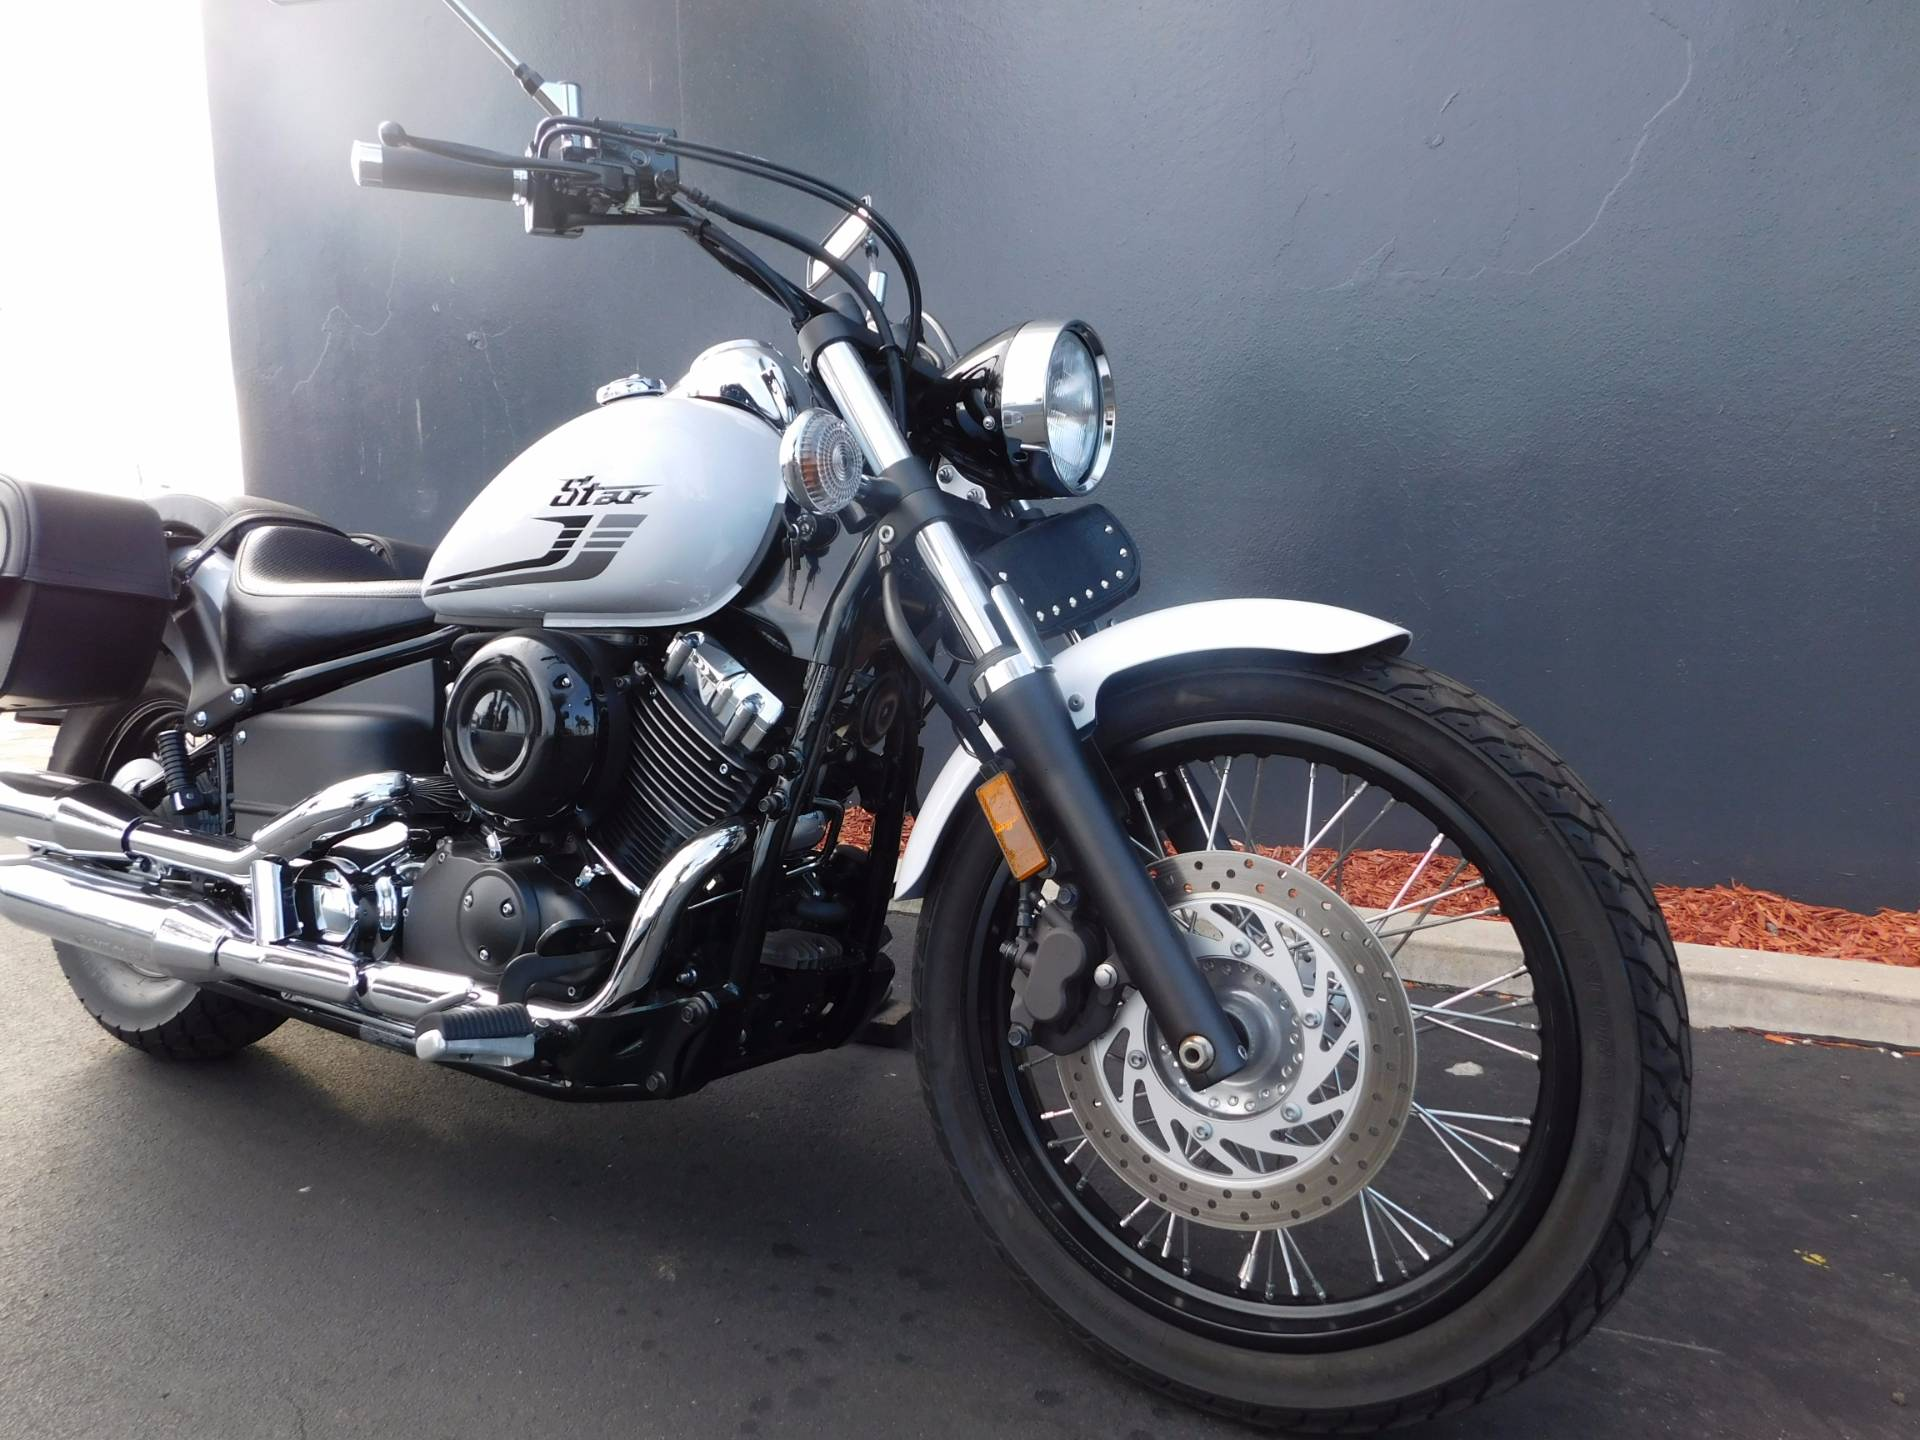 2016 Yamaha V Star 650 Custom in Chula Vista, California - Photo 11